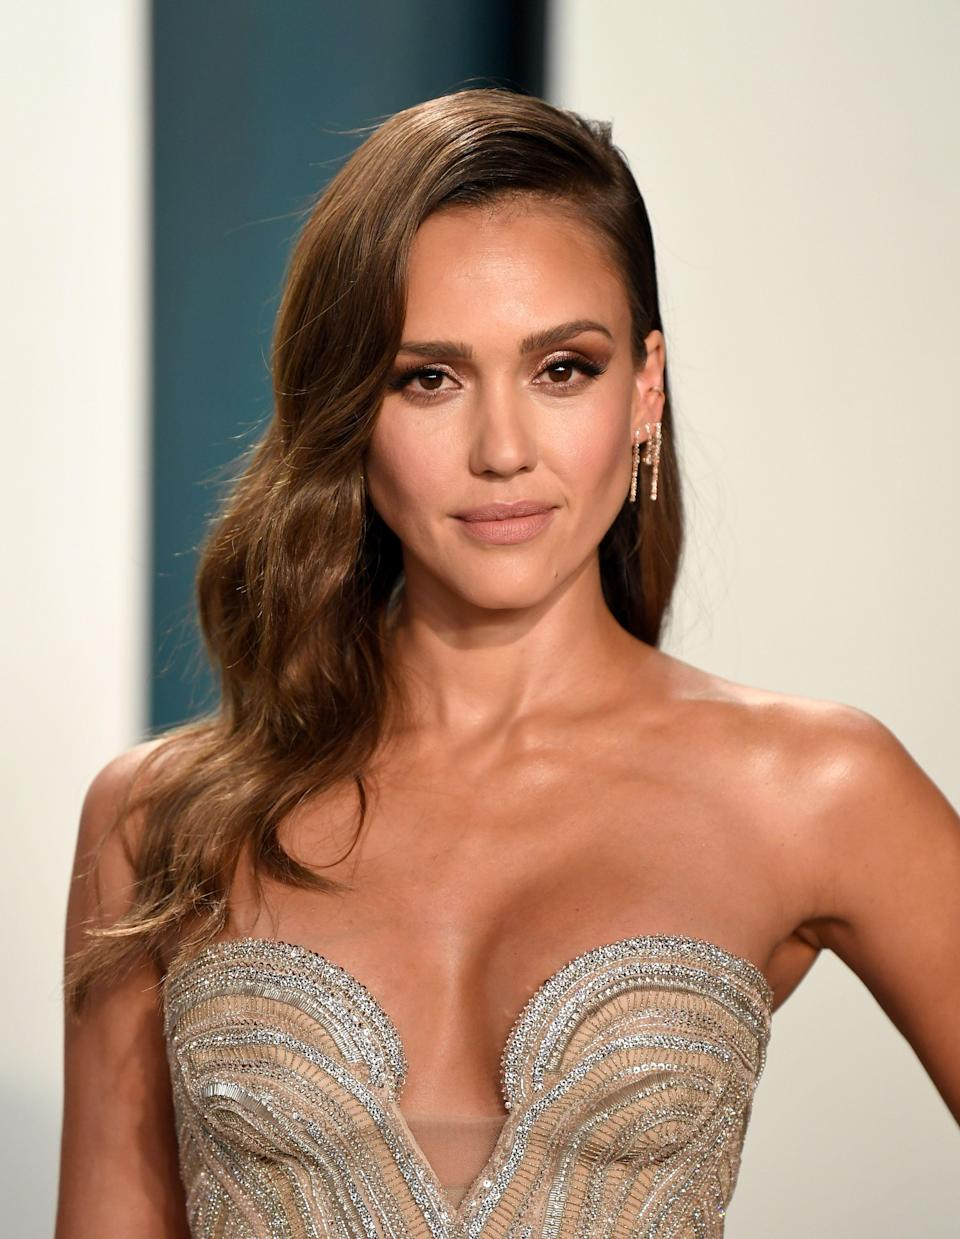 "<p>Jessica Alba has been #healthgoals since pretty much forever, and she's repeatedly made it clear that she has a practical approach to staying healthy. Sure, she works out, but she doesn't over do it. And yeah, she eats well, but she also makes room for treats. As the actress <a href=""https://www.instagram.com/p/COOjJLgFhWS/"" rel=""nofollow noopener"" target=""_blank"" data-ylk=""slk:celebrates hitting 40,"" class=""link rapid-noclick-resp"">celebrates hitting 40, </a>here's her approach to wellness. </p>"